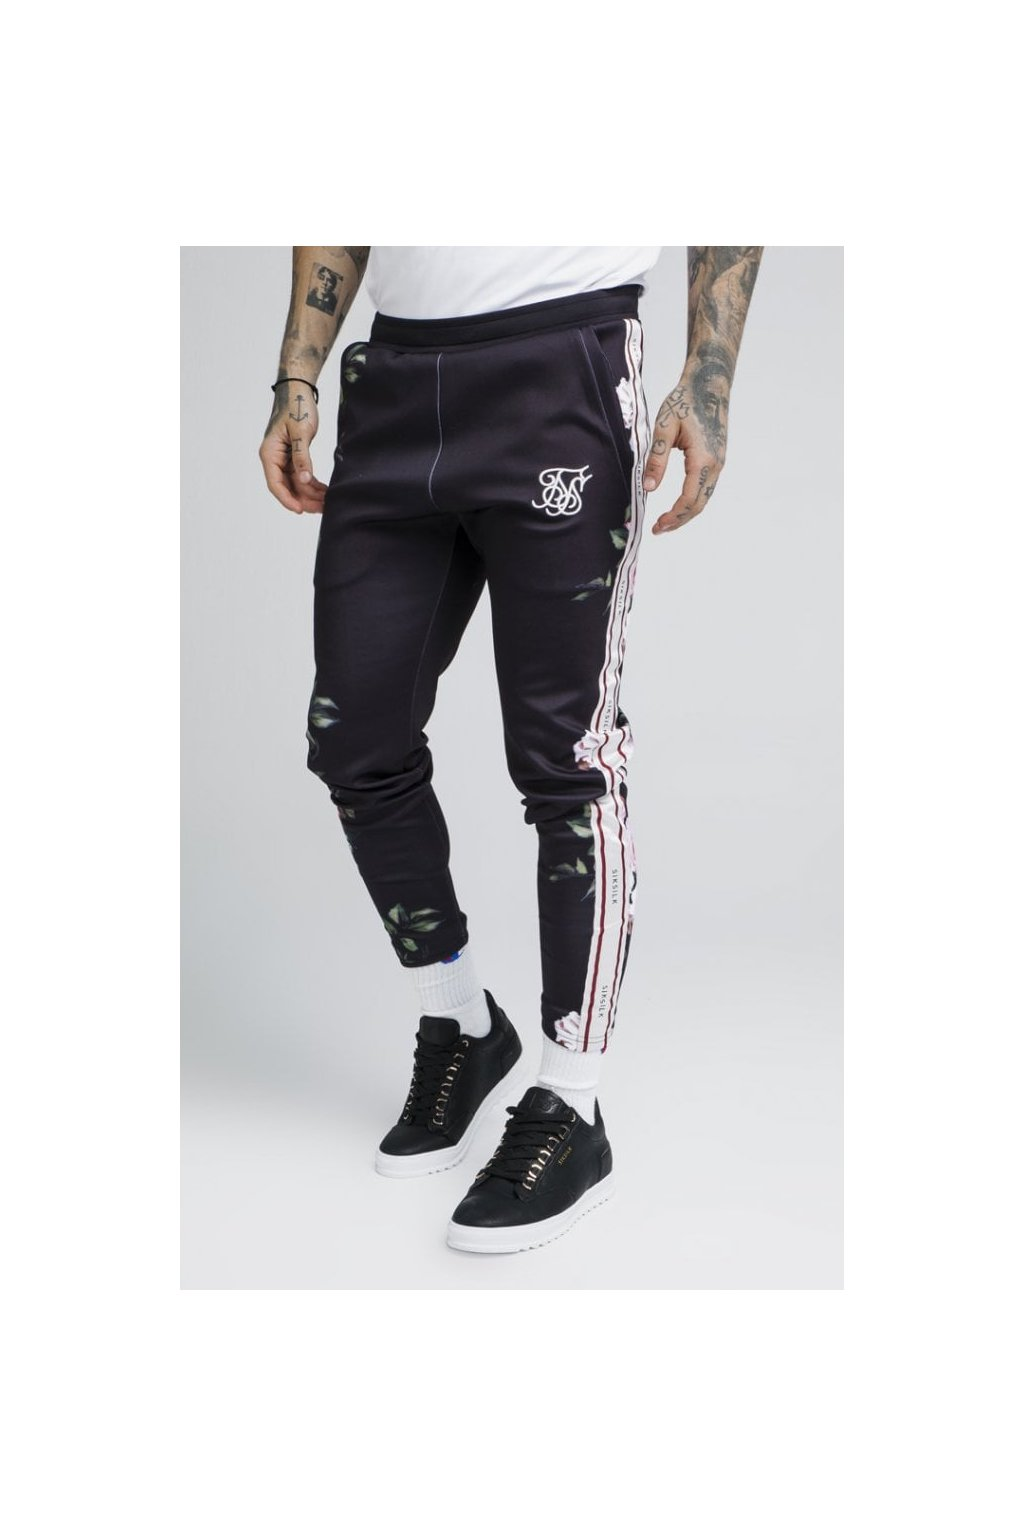 siksilk oil paint poly tricot cropped pants black p2651 23872 medium